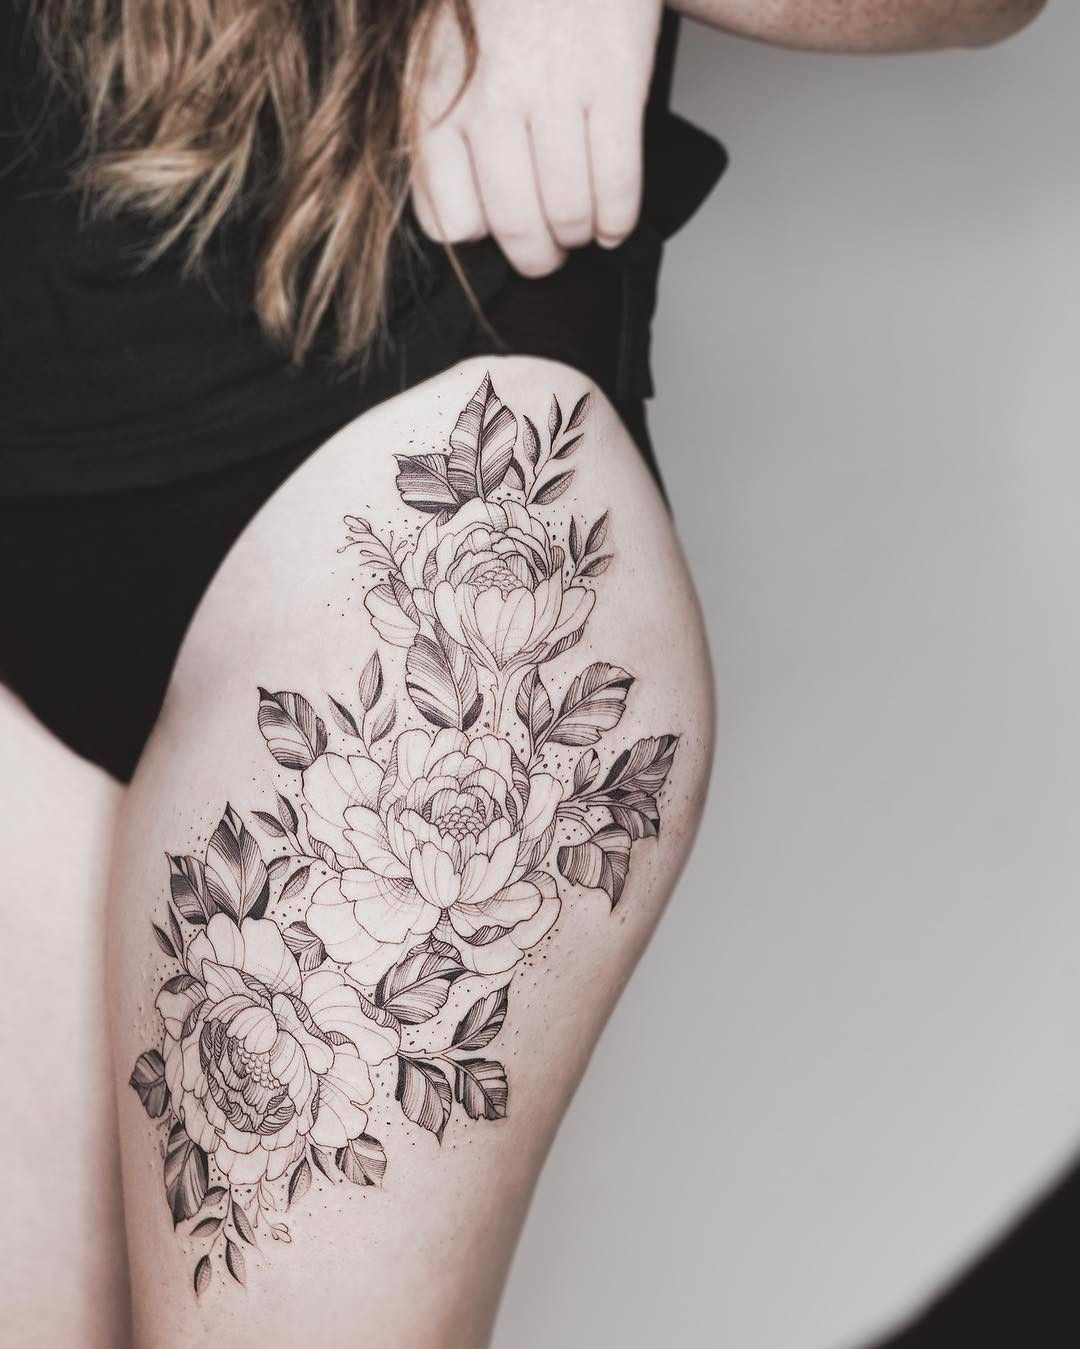 Tattoo Oberschenkel Blumen Floral Thigh Piece One Sitting Tattoos On Women Tattoos